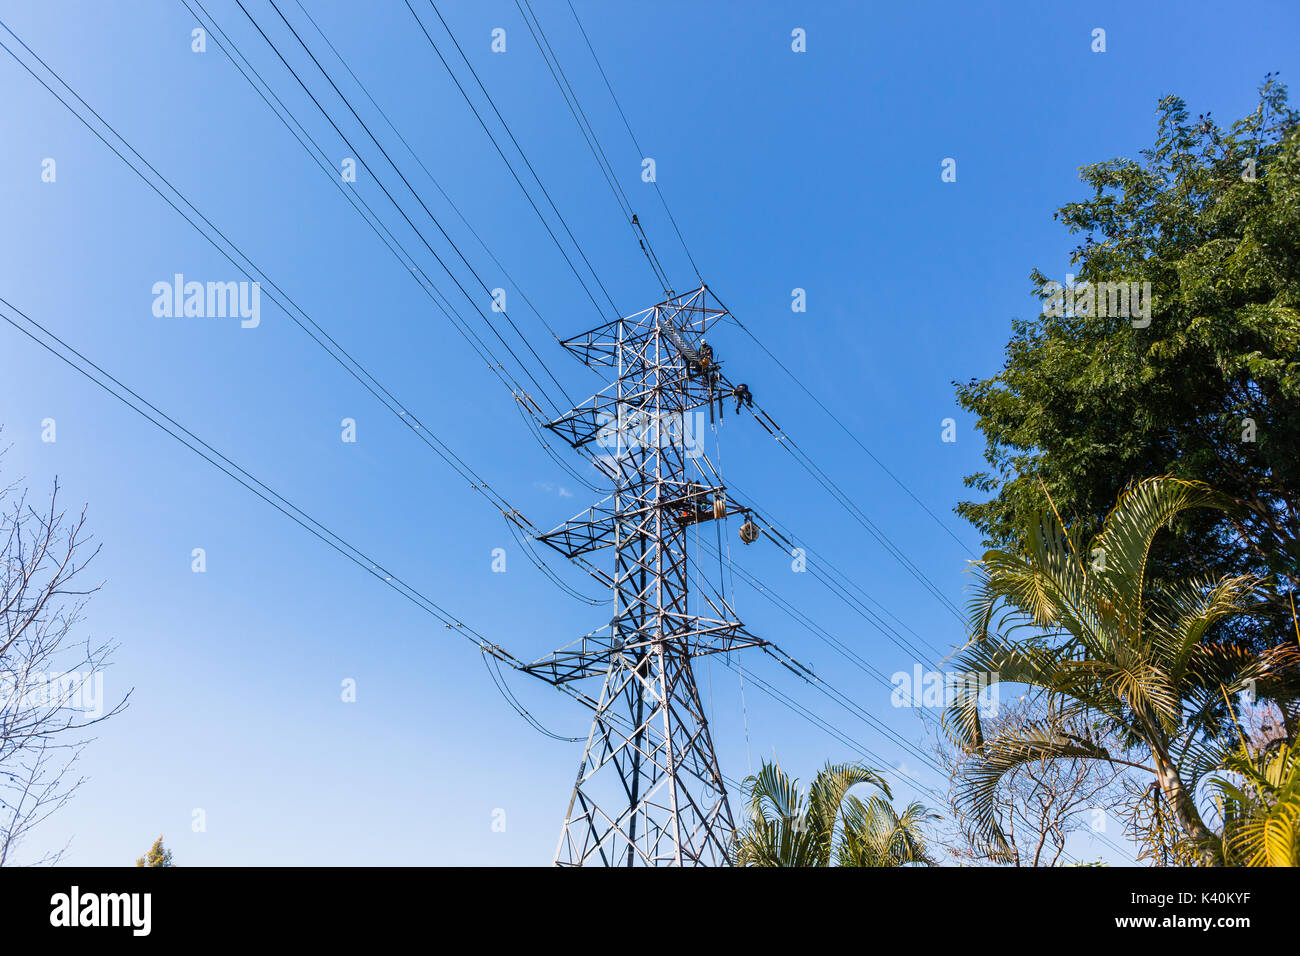 Electricians hanging  high up suspended on electrical steel tower installing new high voltage electricity powerlines. - Stock Image